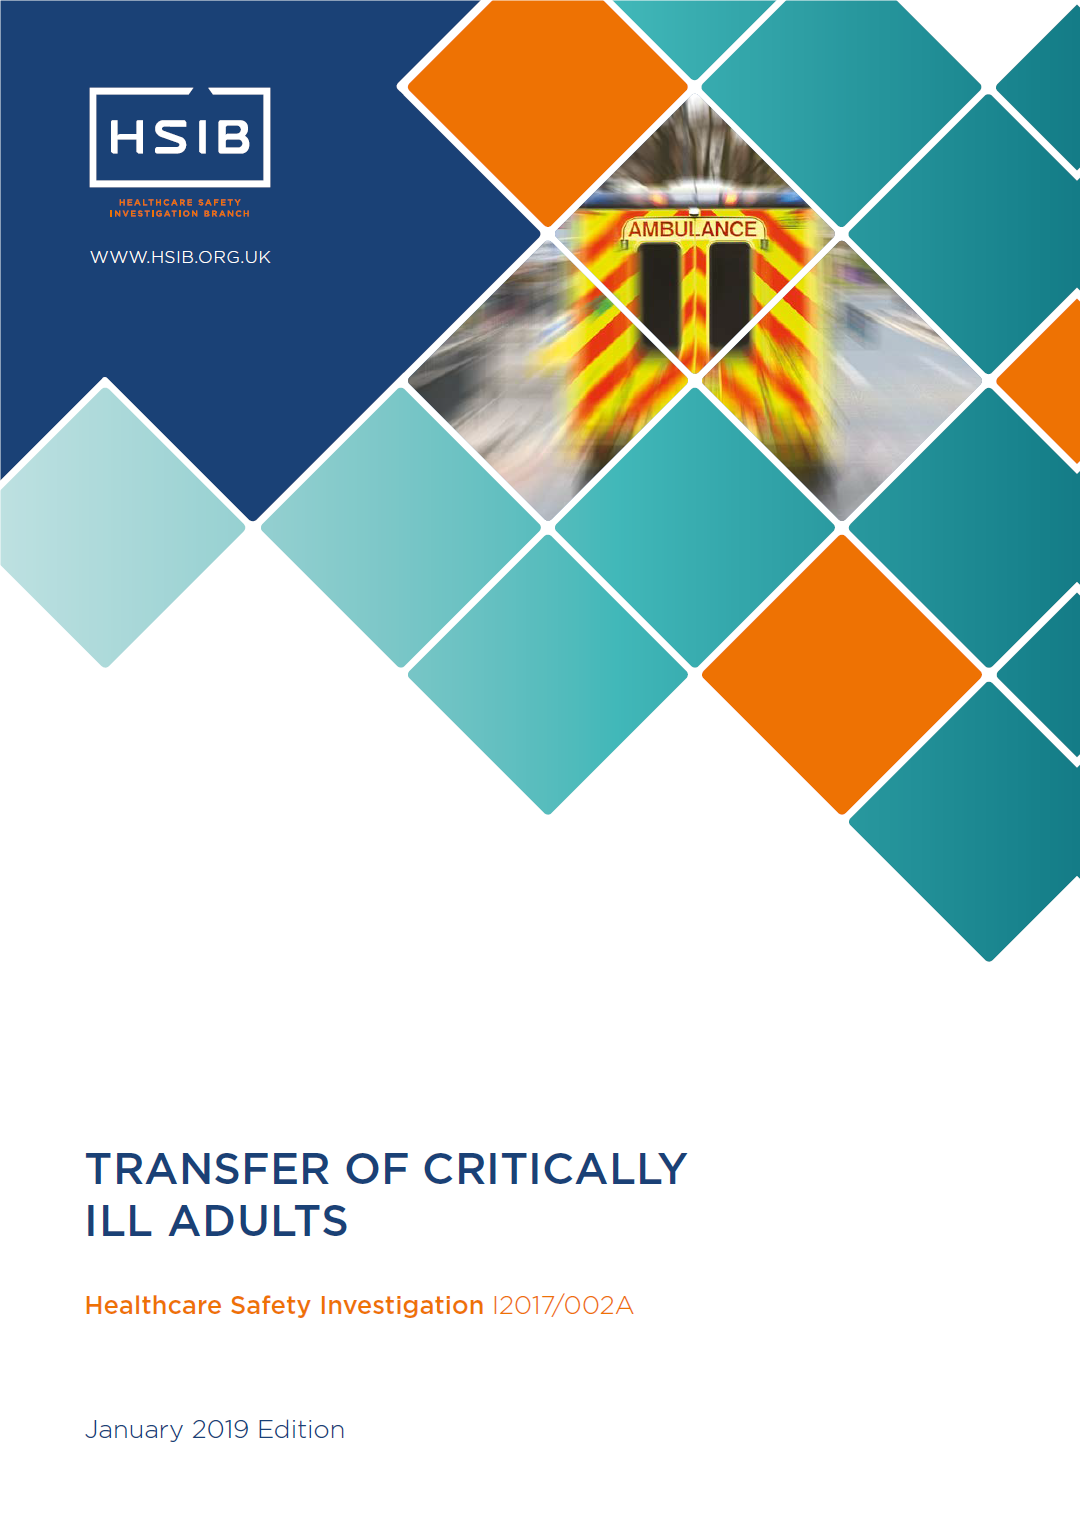 HSIB report on the transfer of critically ill adults